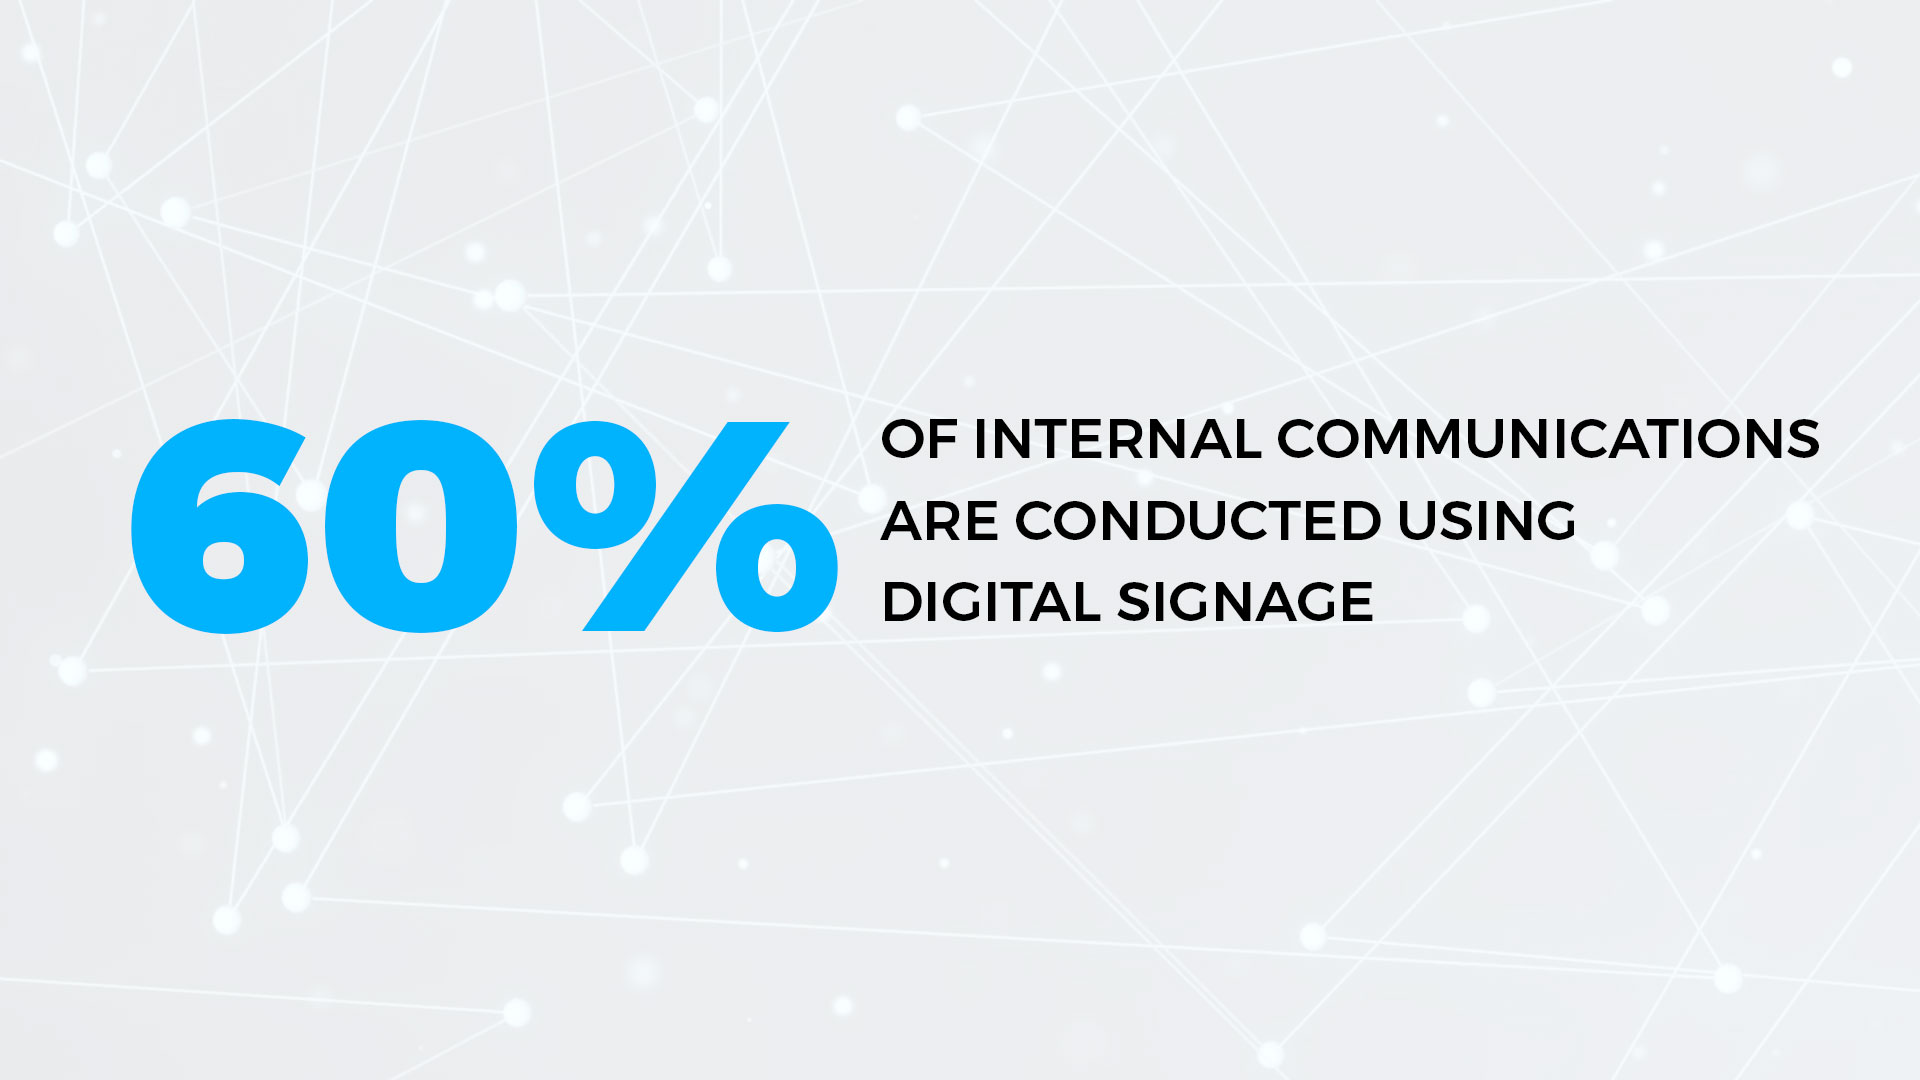 60% of internal communications are conducted using digital signage